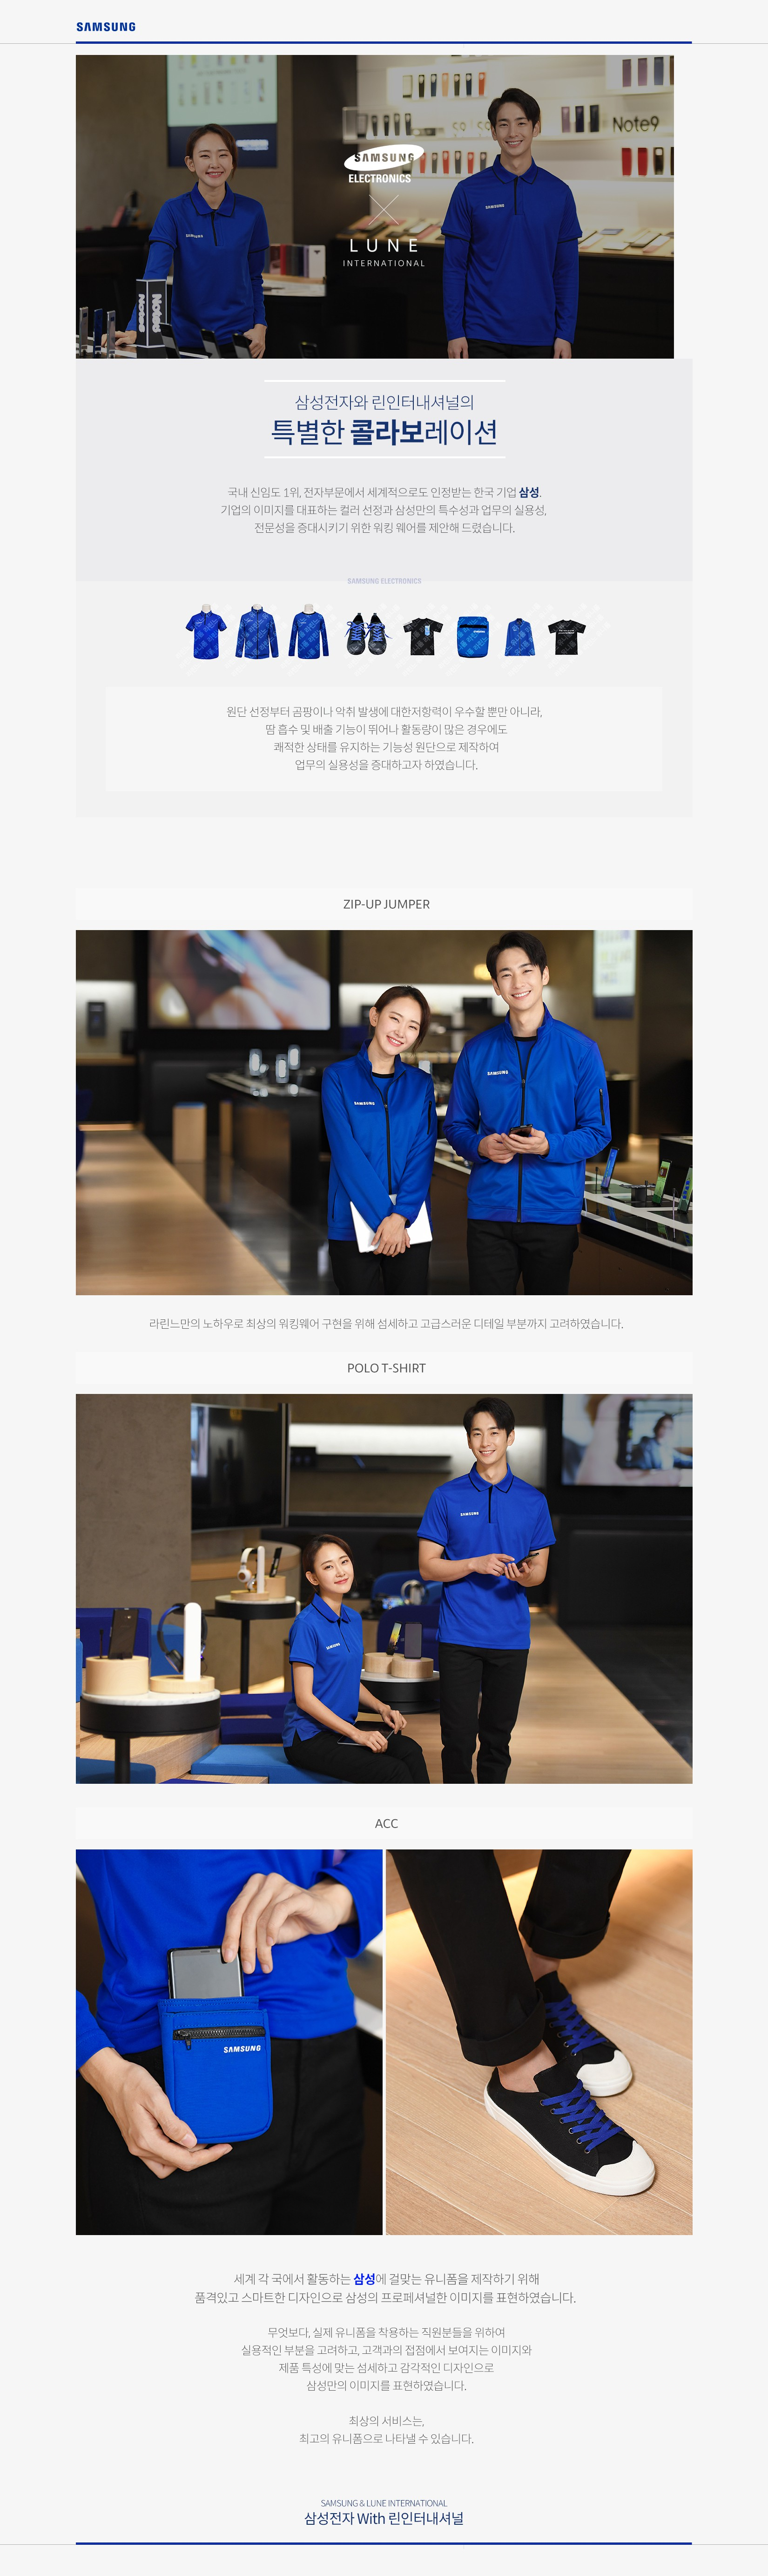 samsung uniform